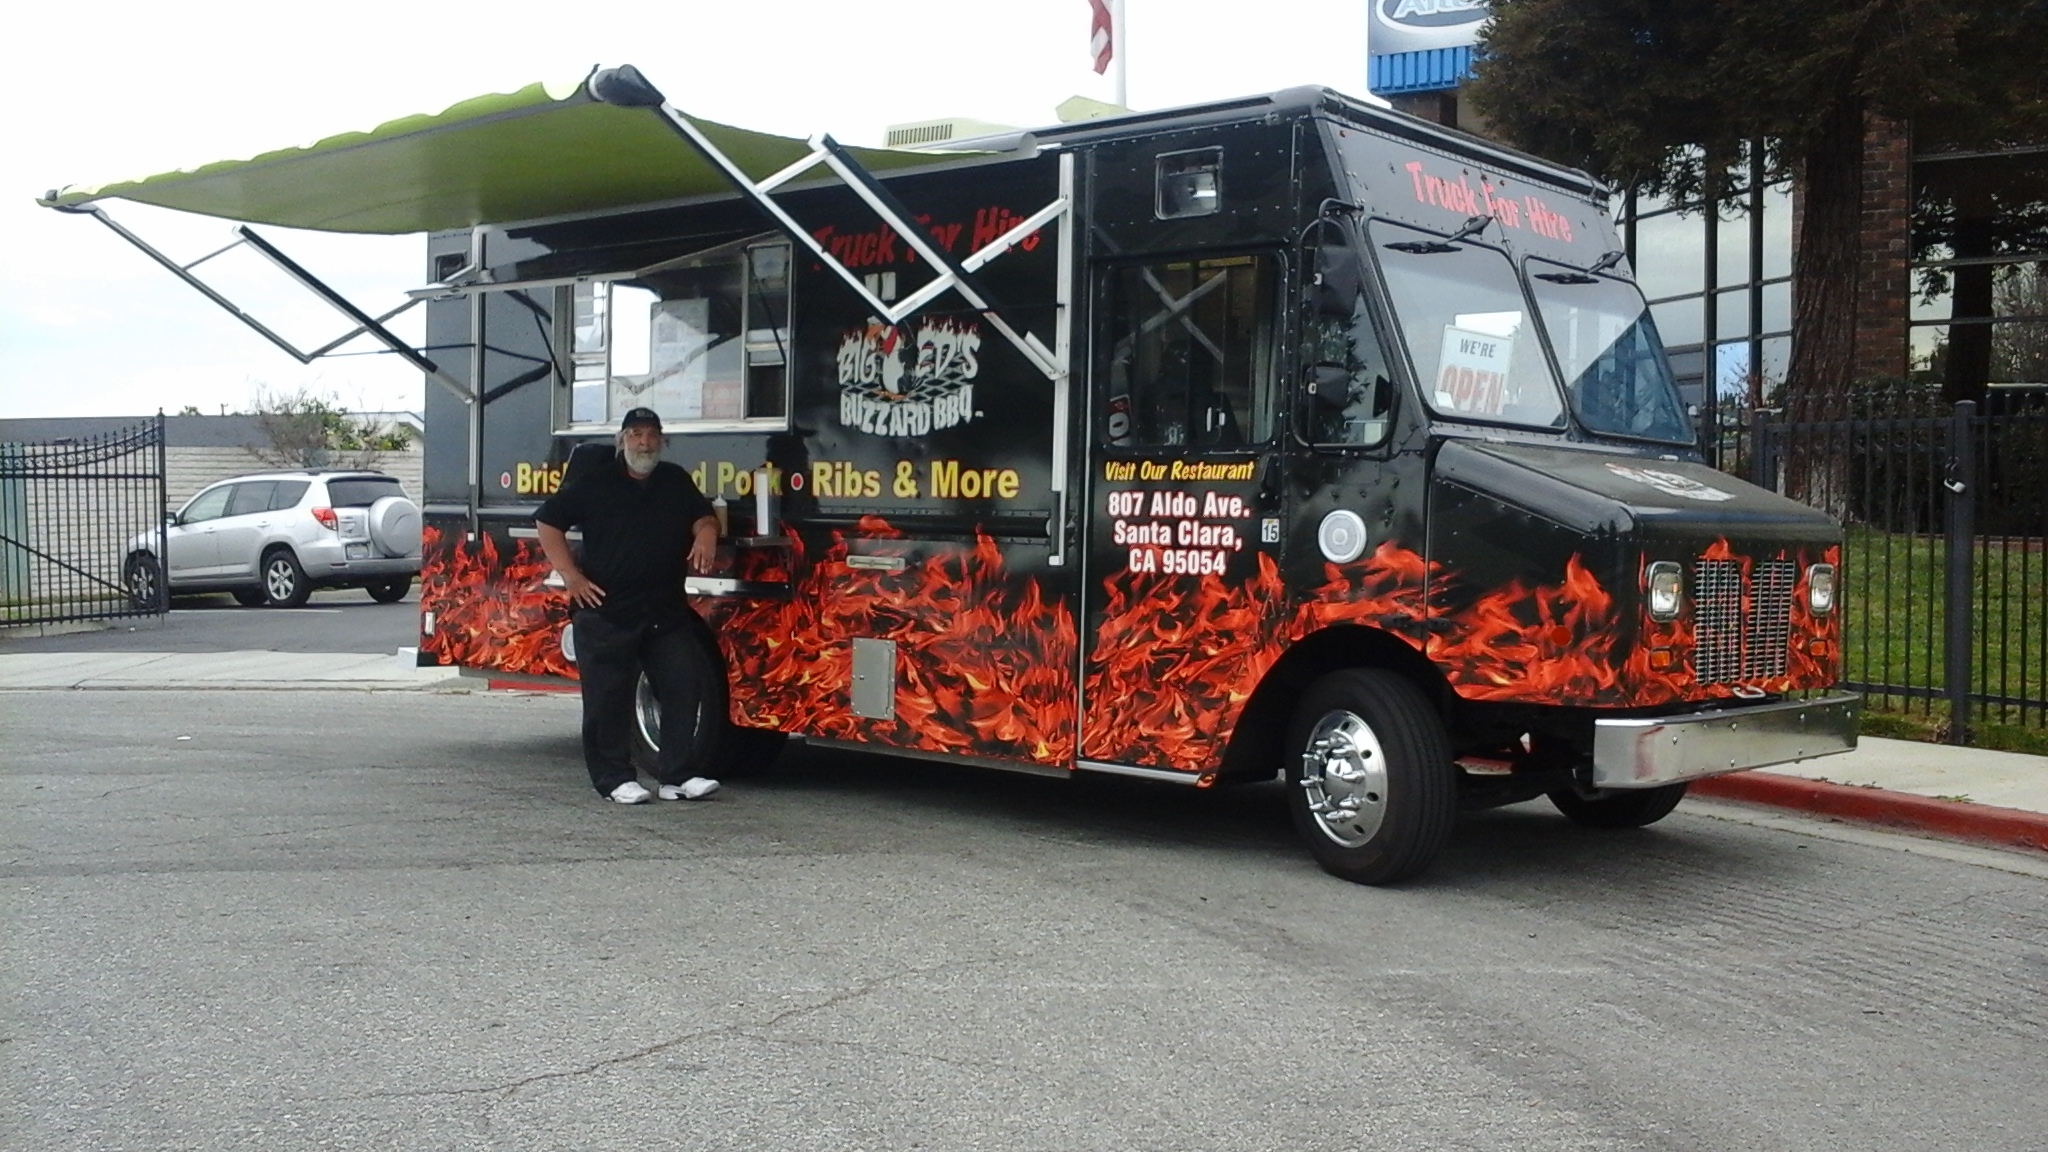 2012 Chevy Workhorse BBQ Food Truck For Sale in San Jose -